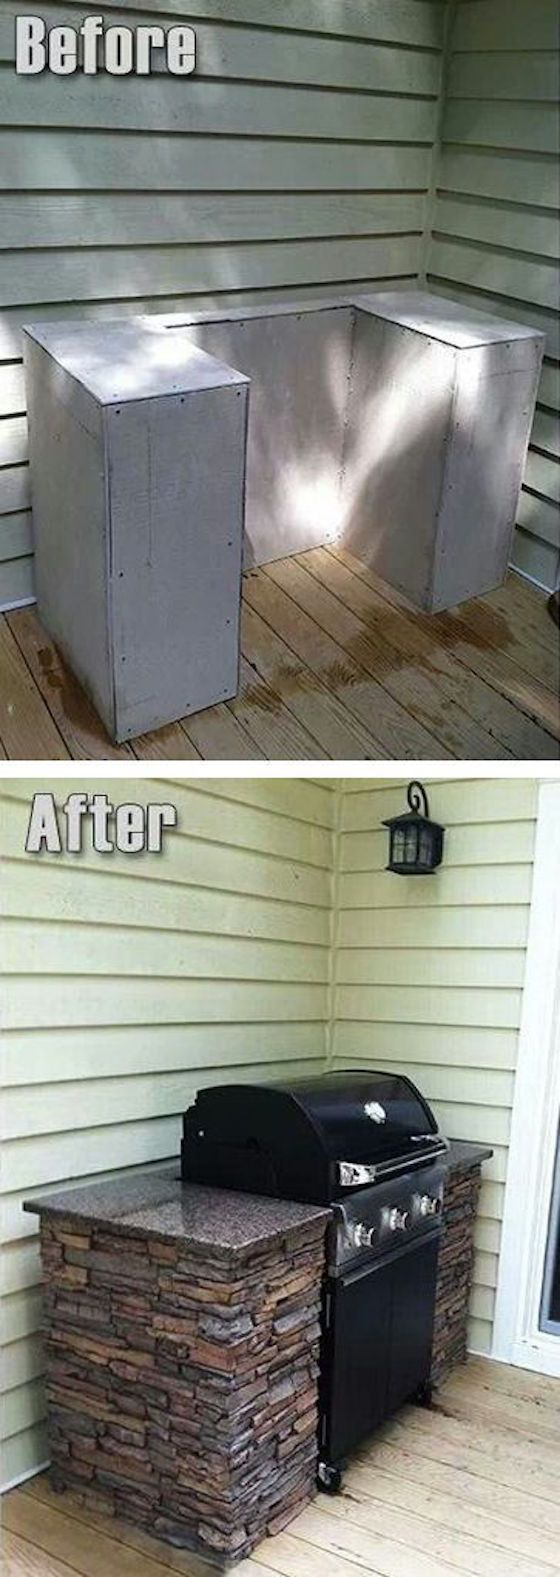 Give your deck an upgraded look with this built in grill.